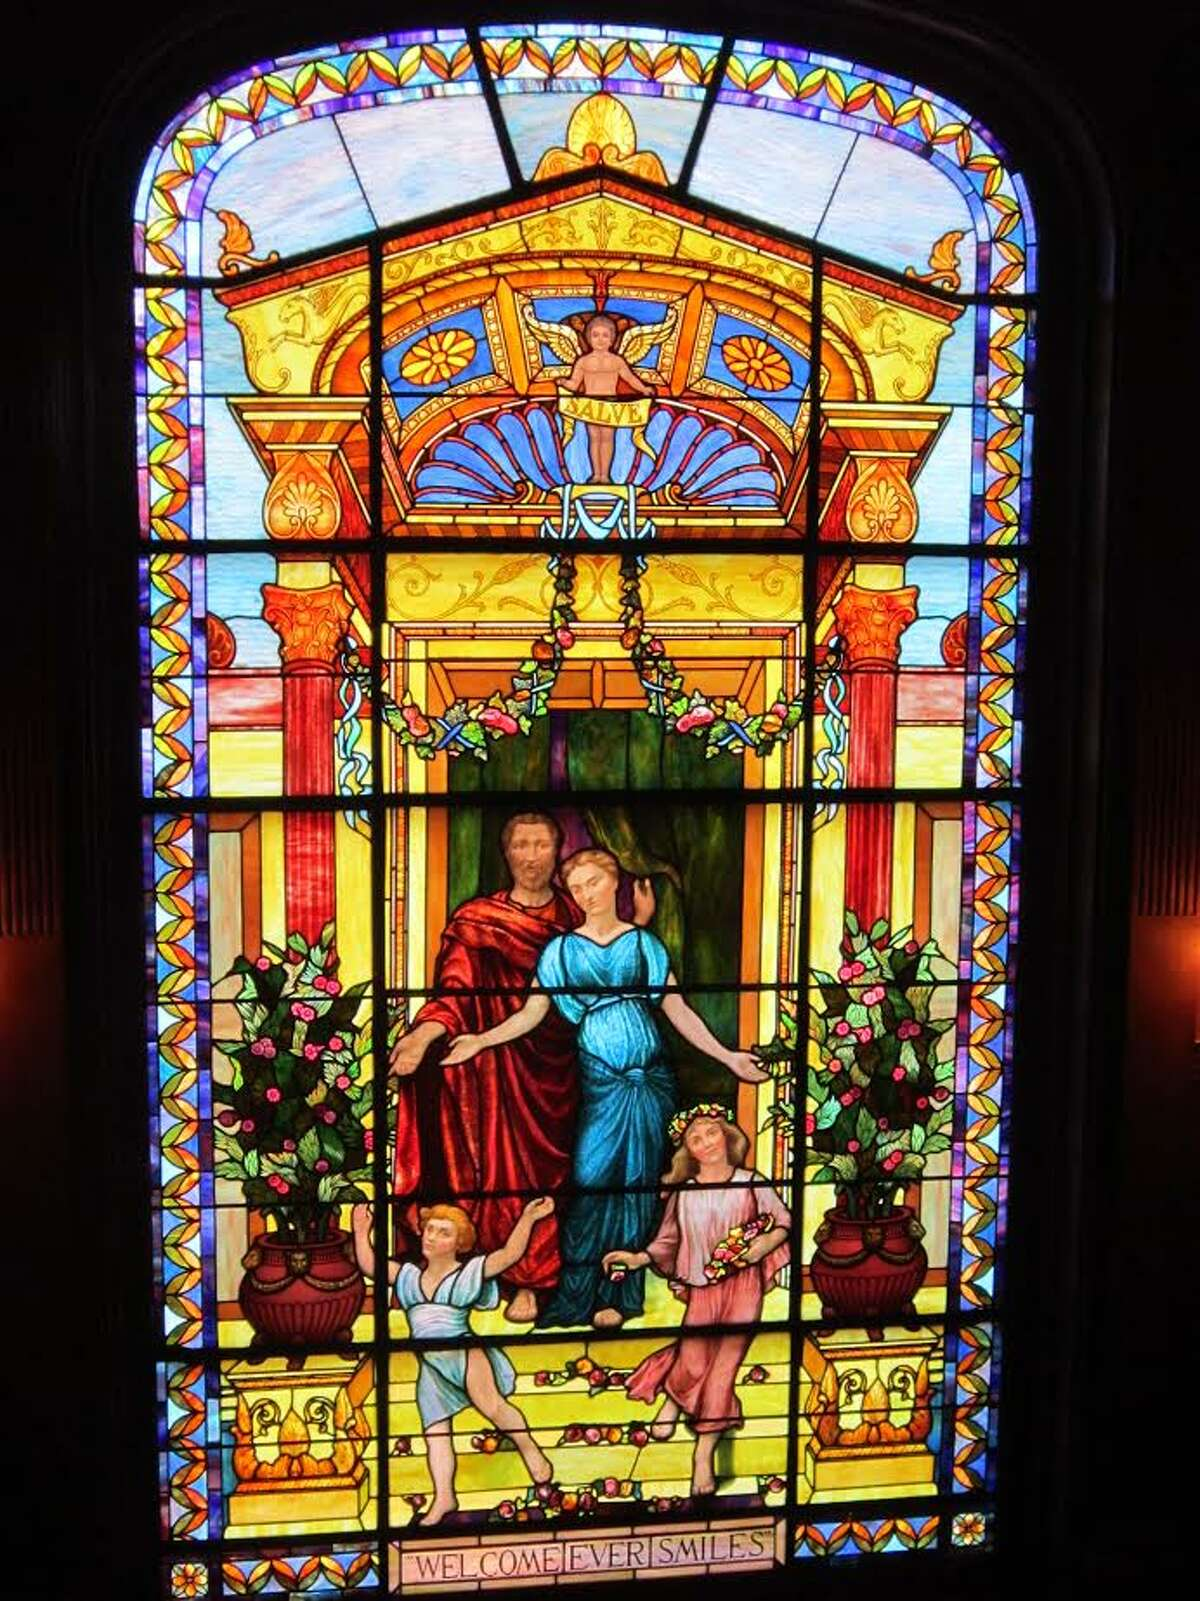 Galveston's Moody Mansion features this bright and colorful stained glass window.